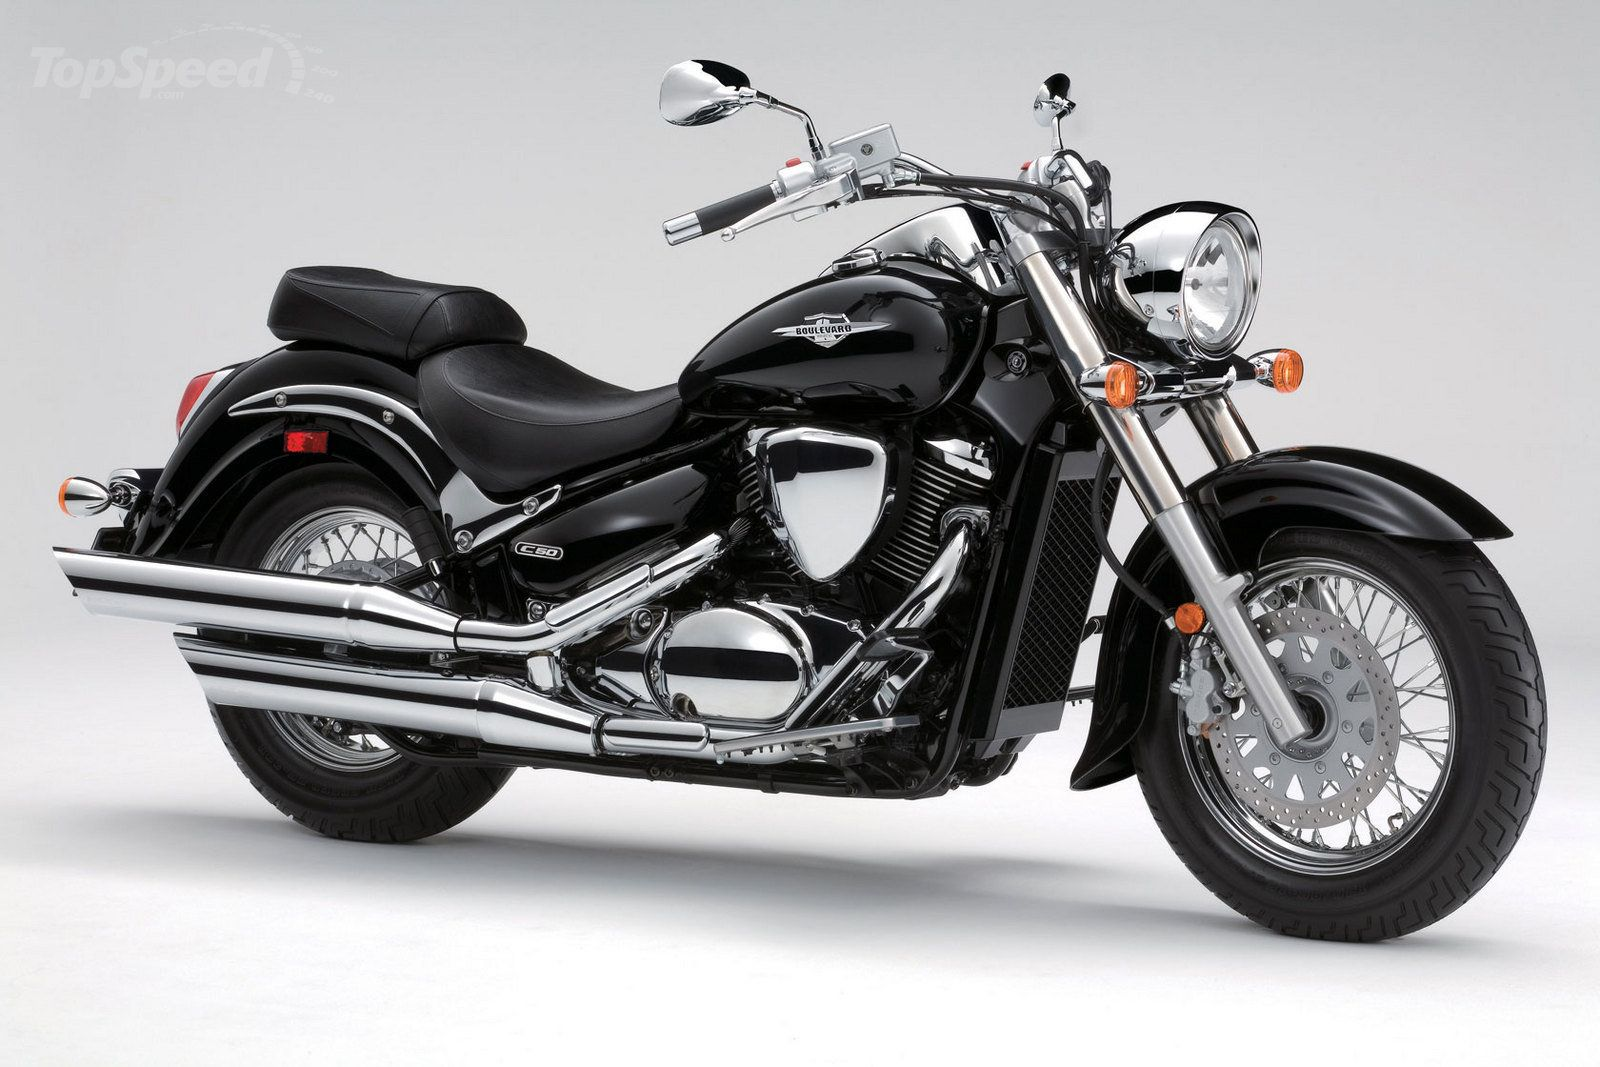 The 2013 suzuki boulevard is the kind of nifty cruiser you d choose in case the really big bikes don t seem to float your boat